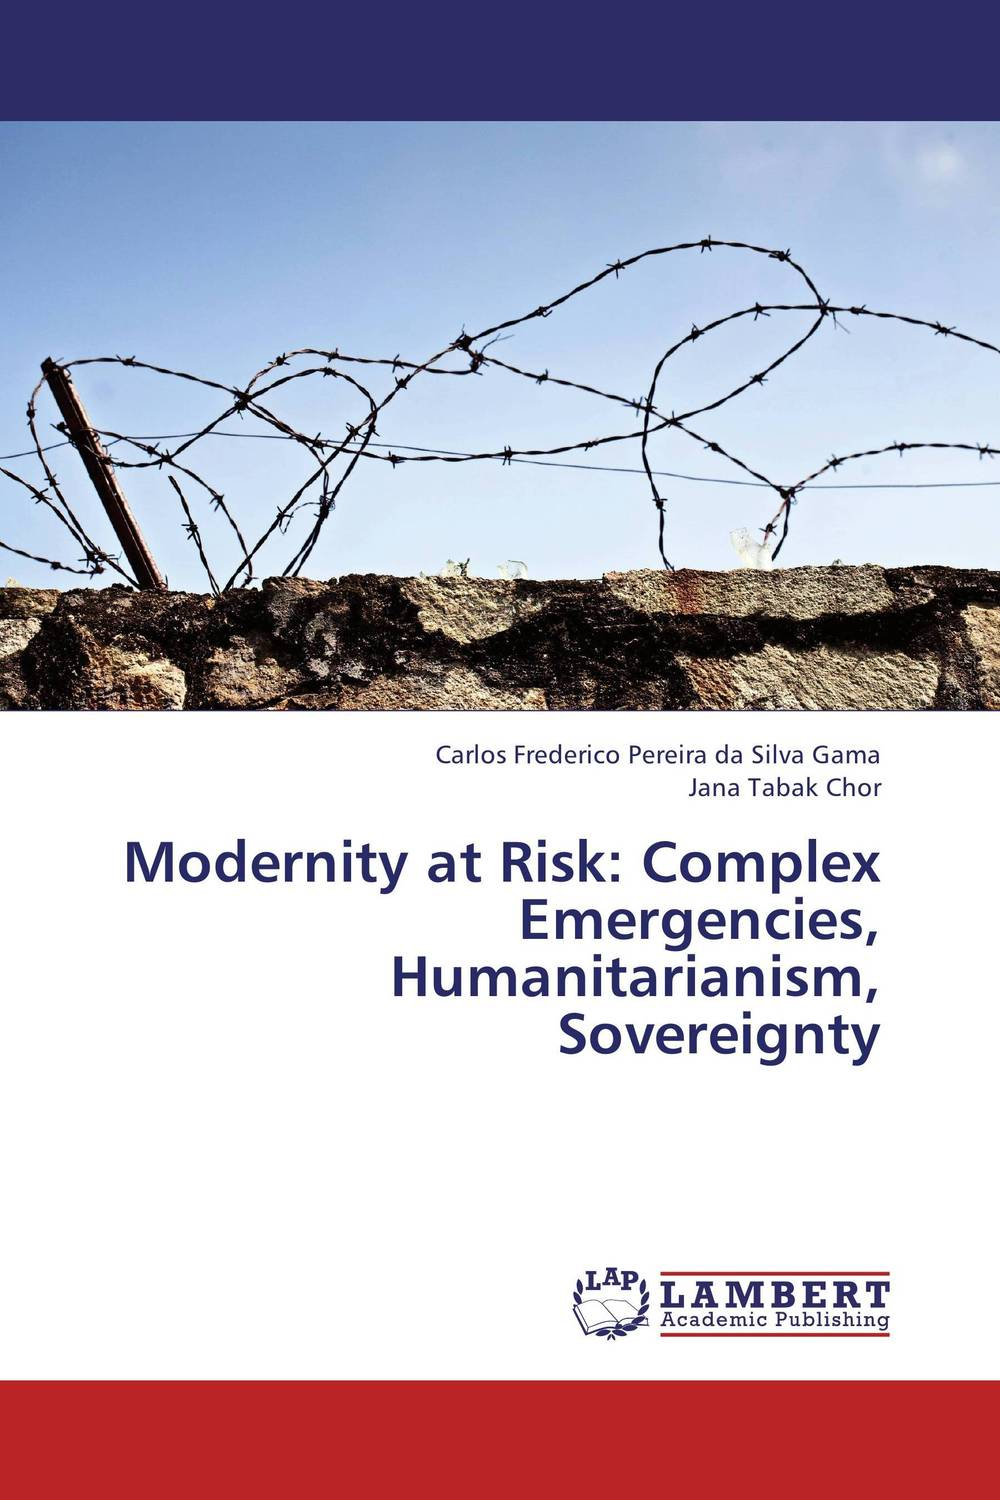 Modernity at Risk: Complex Emergencies, Humanitarianism, Sovereignty momentum часы momentum 1m sp17ps0 коллекция heatwave